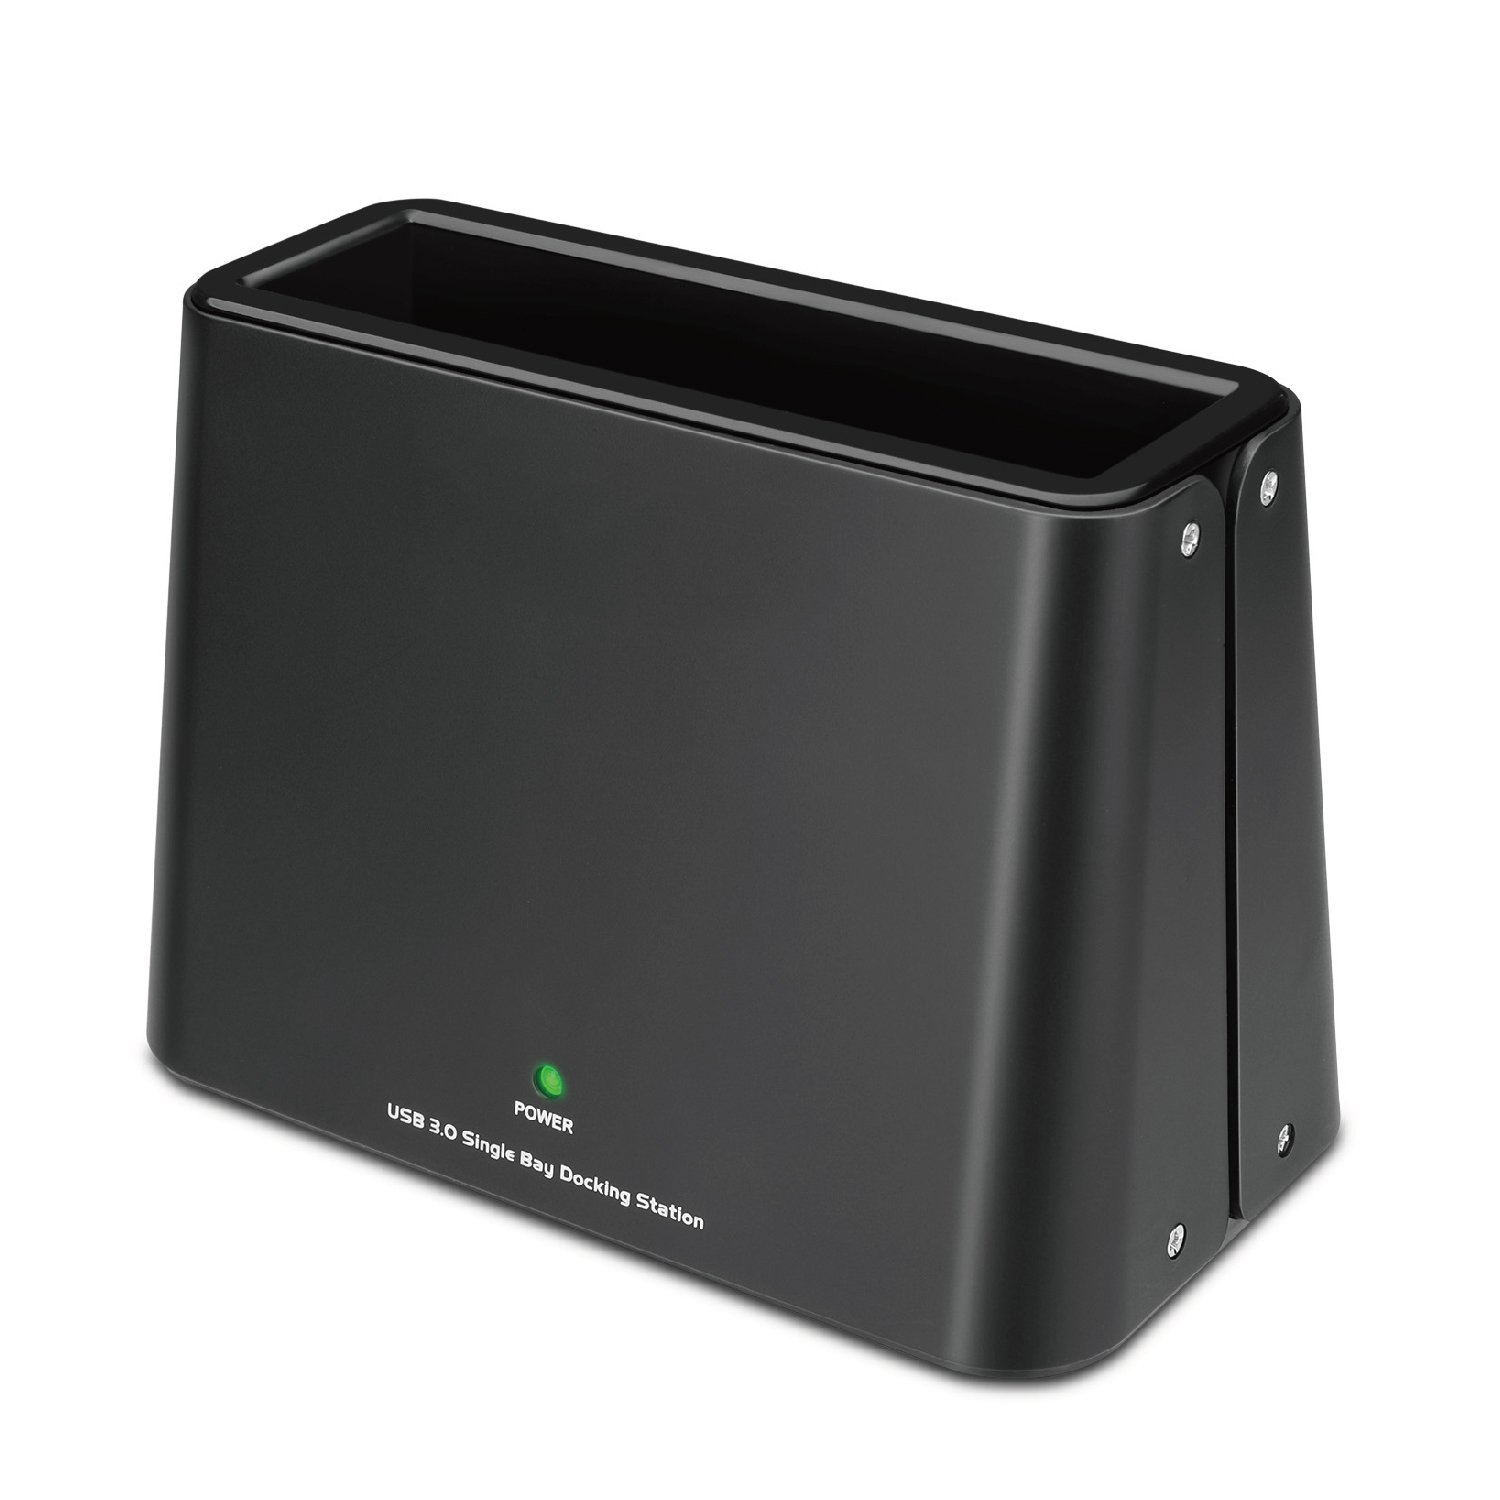 TNP USB 3.0 to SATA Single-Bay HDD Docking Station - External Hard Disk Drive Dock with Offline Clone Function for 2.5 / 3.5 Inch HDD / SSD, SATA I / II / III, Support 8TB Drives and UASP